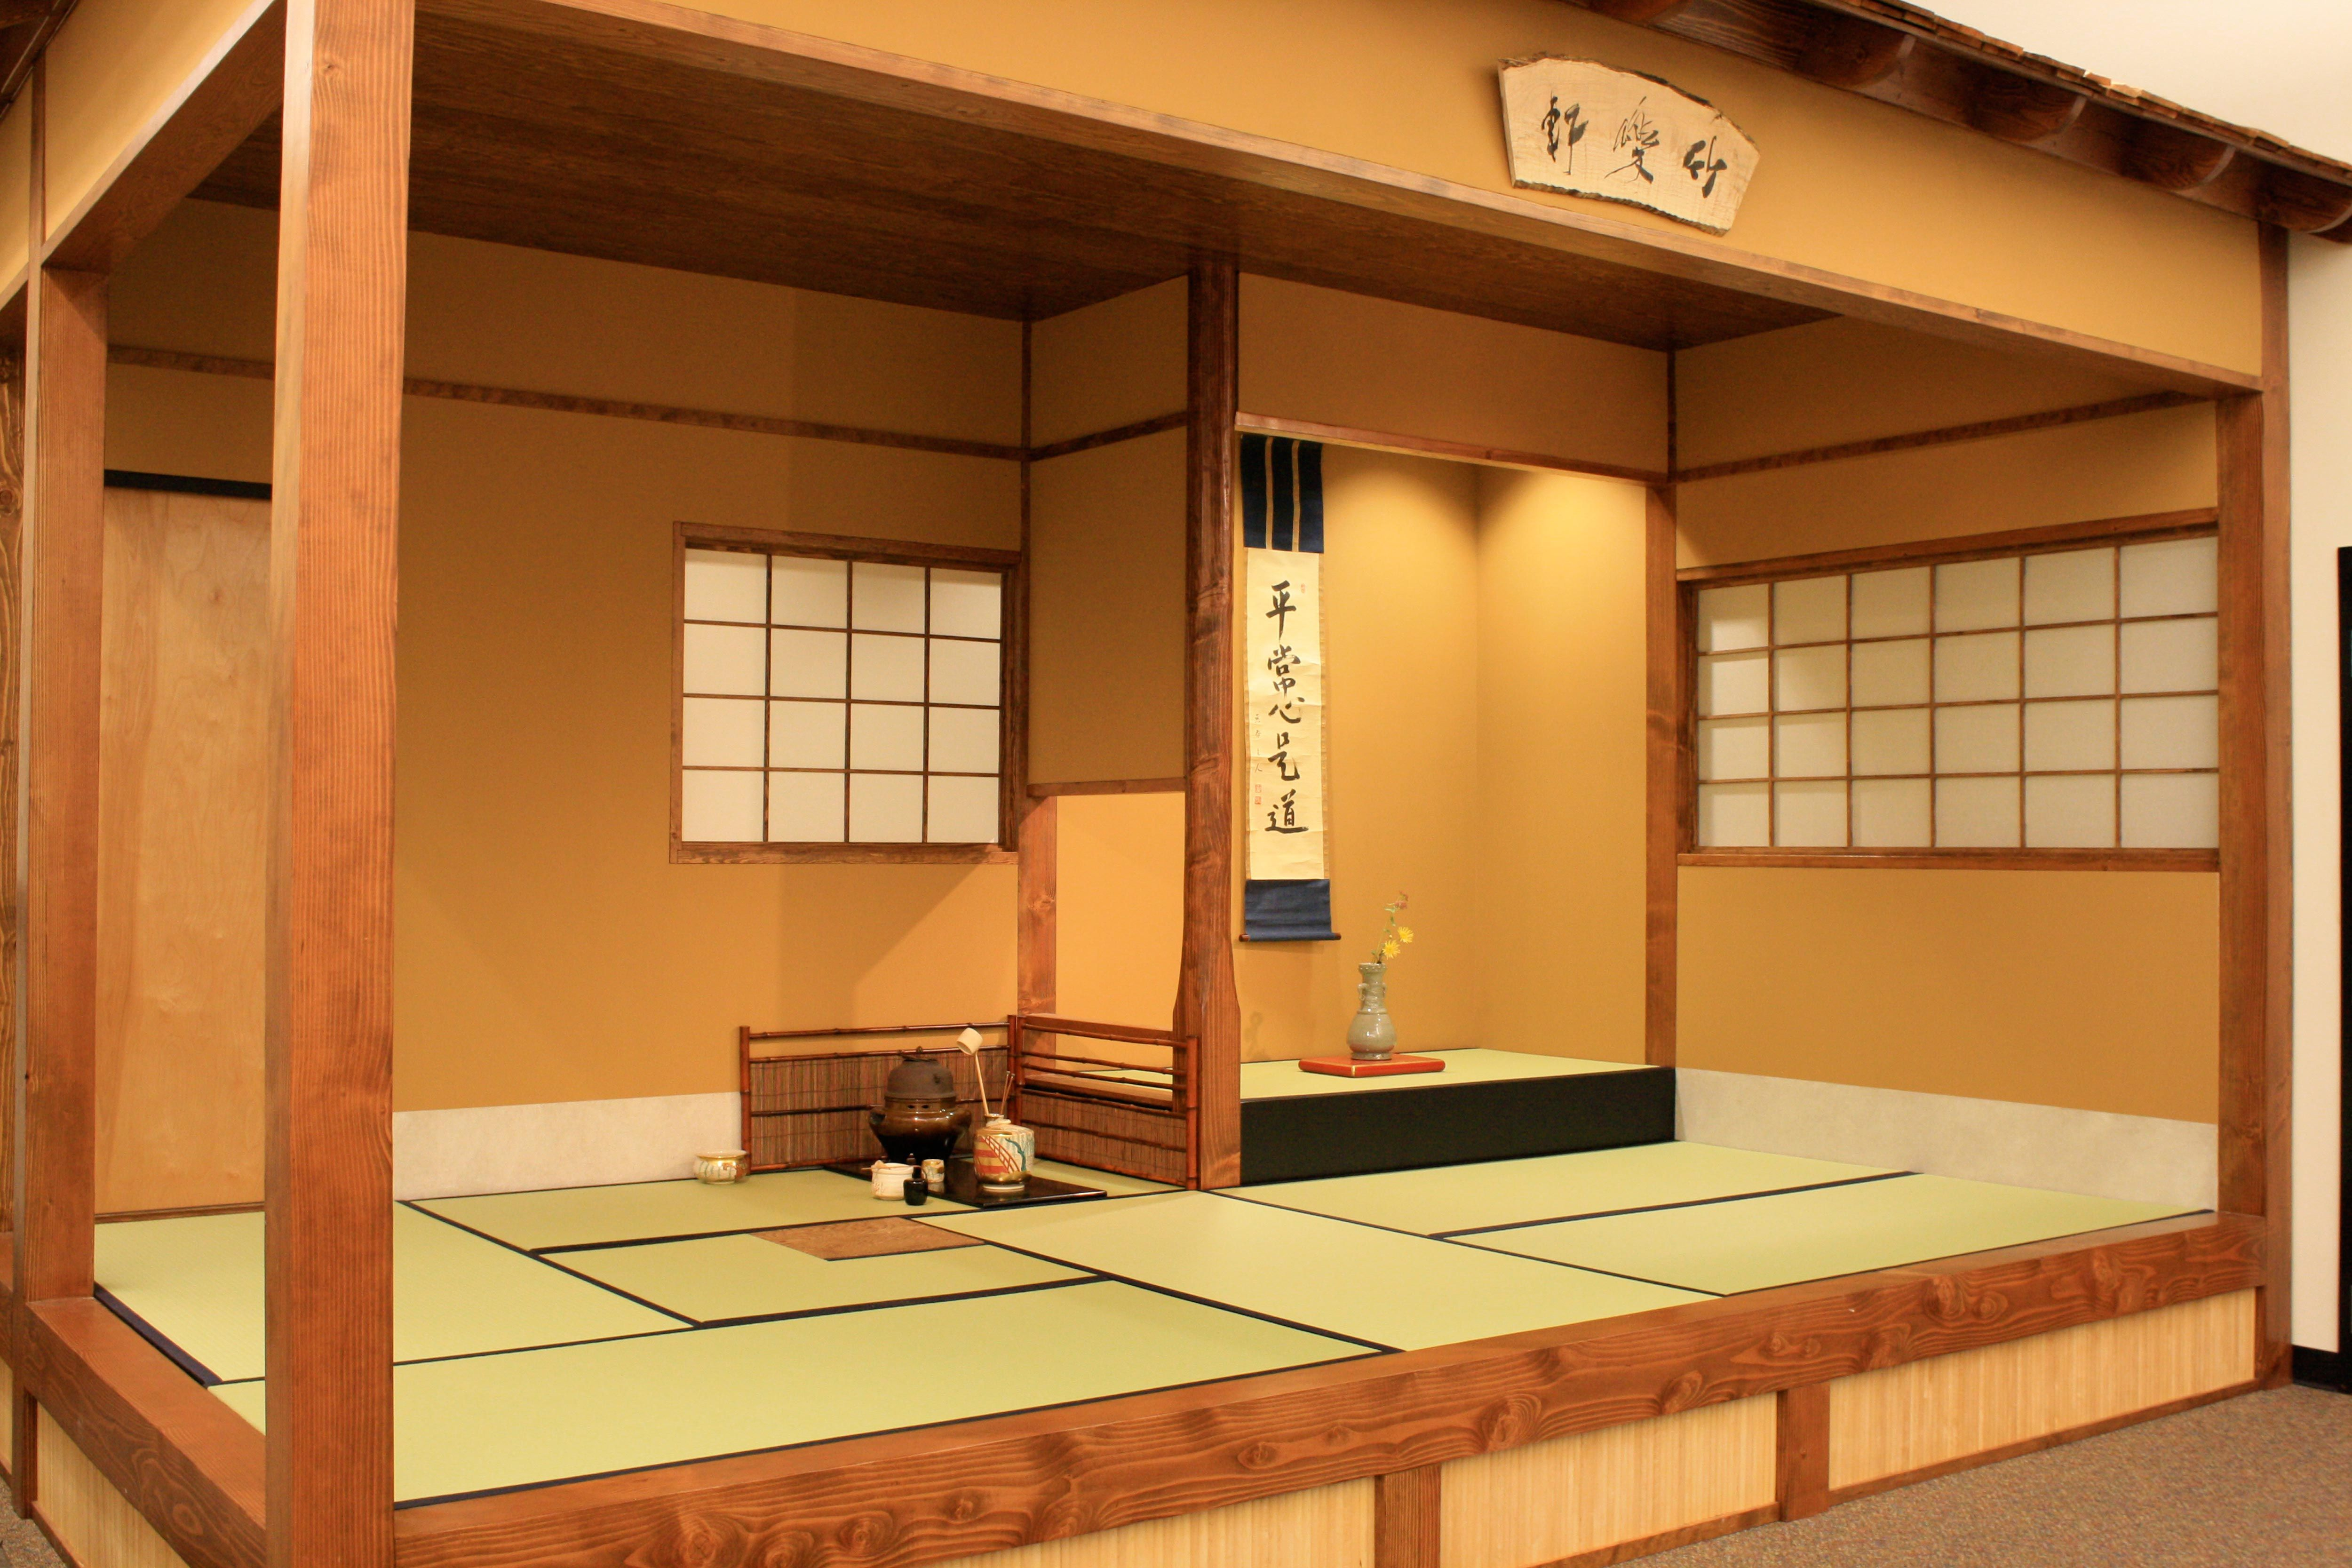 Cool japan style dining table bedroom outdoor play systems restoration general contractors fence traditional expansive